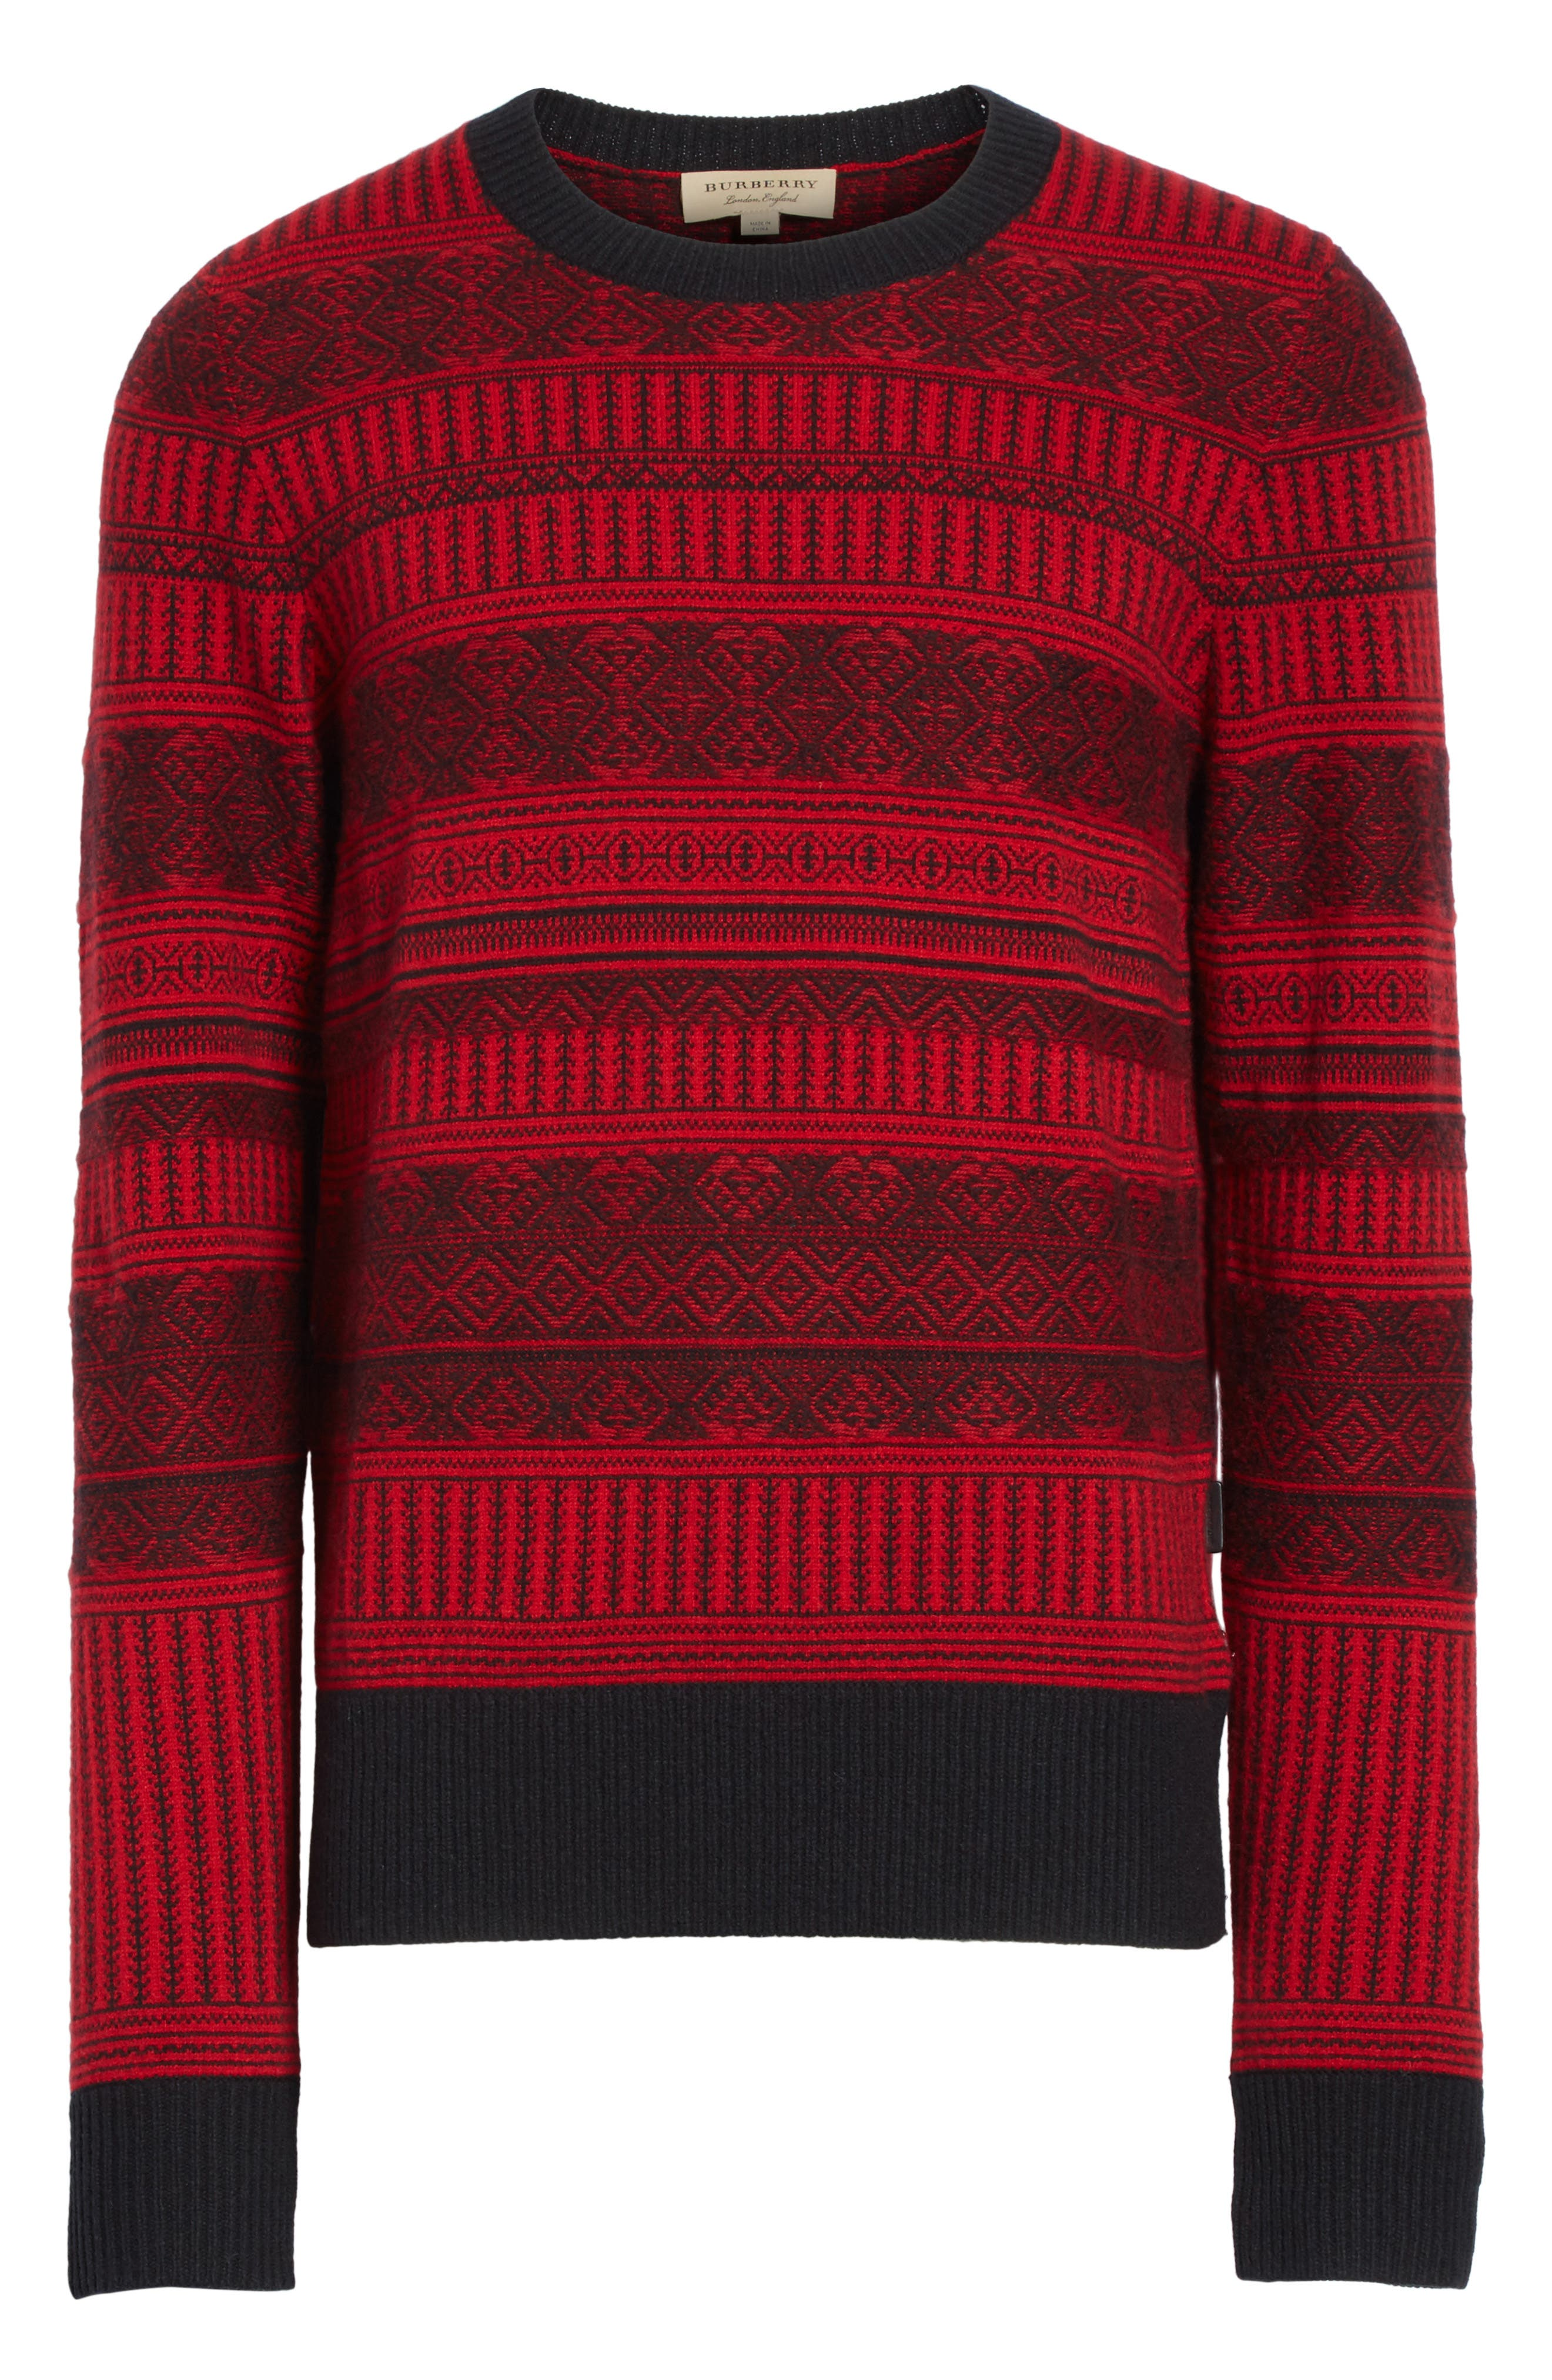 Tredway Wool & Cashmere Sweater,                             Alternate thumbnail 6, color,                             Military Red